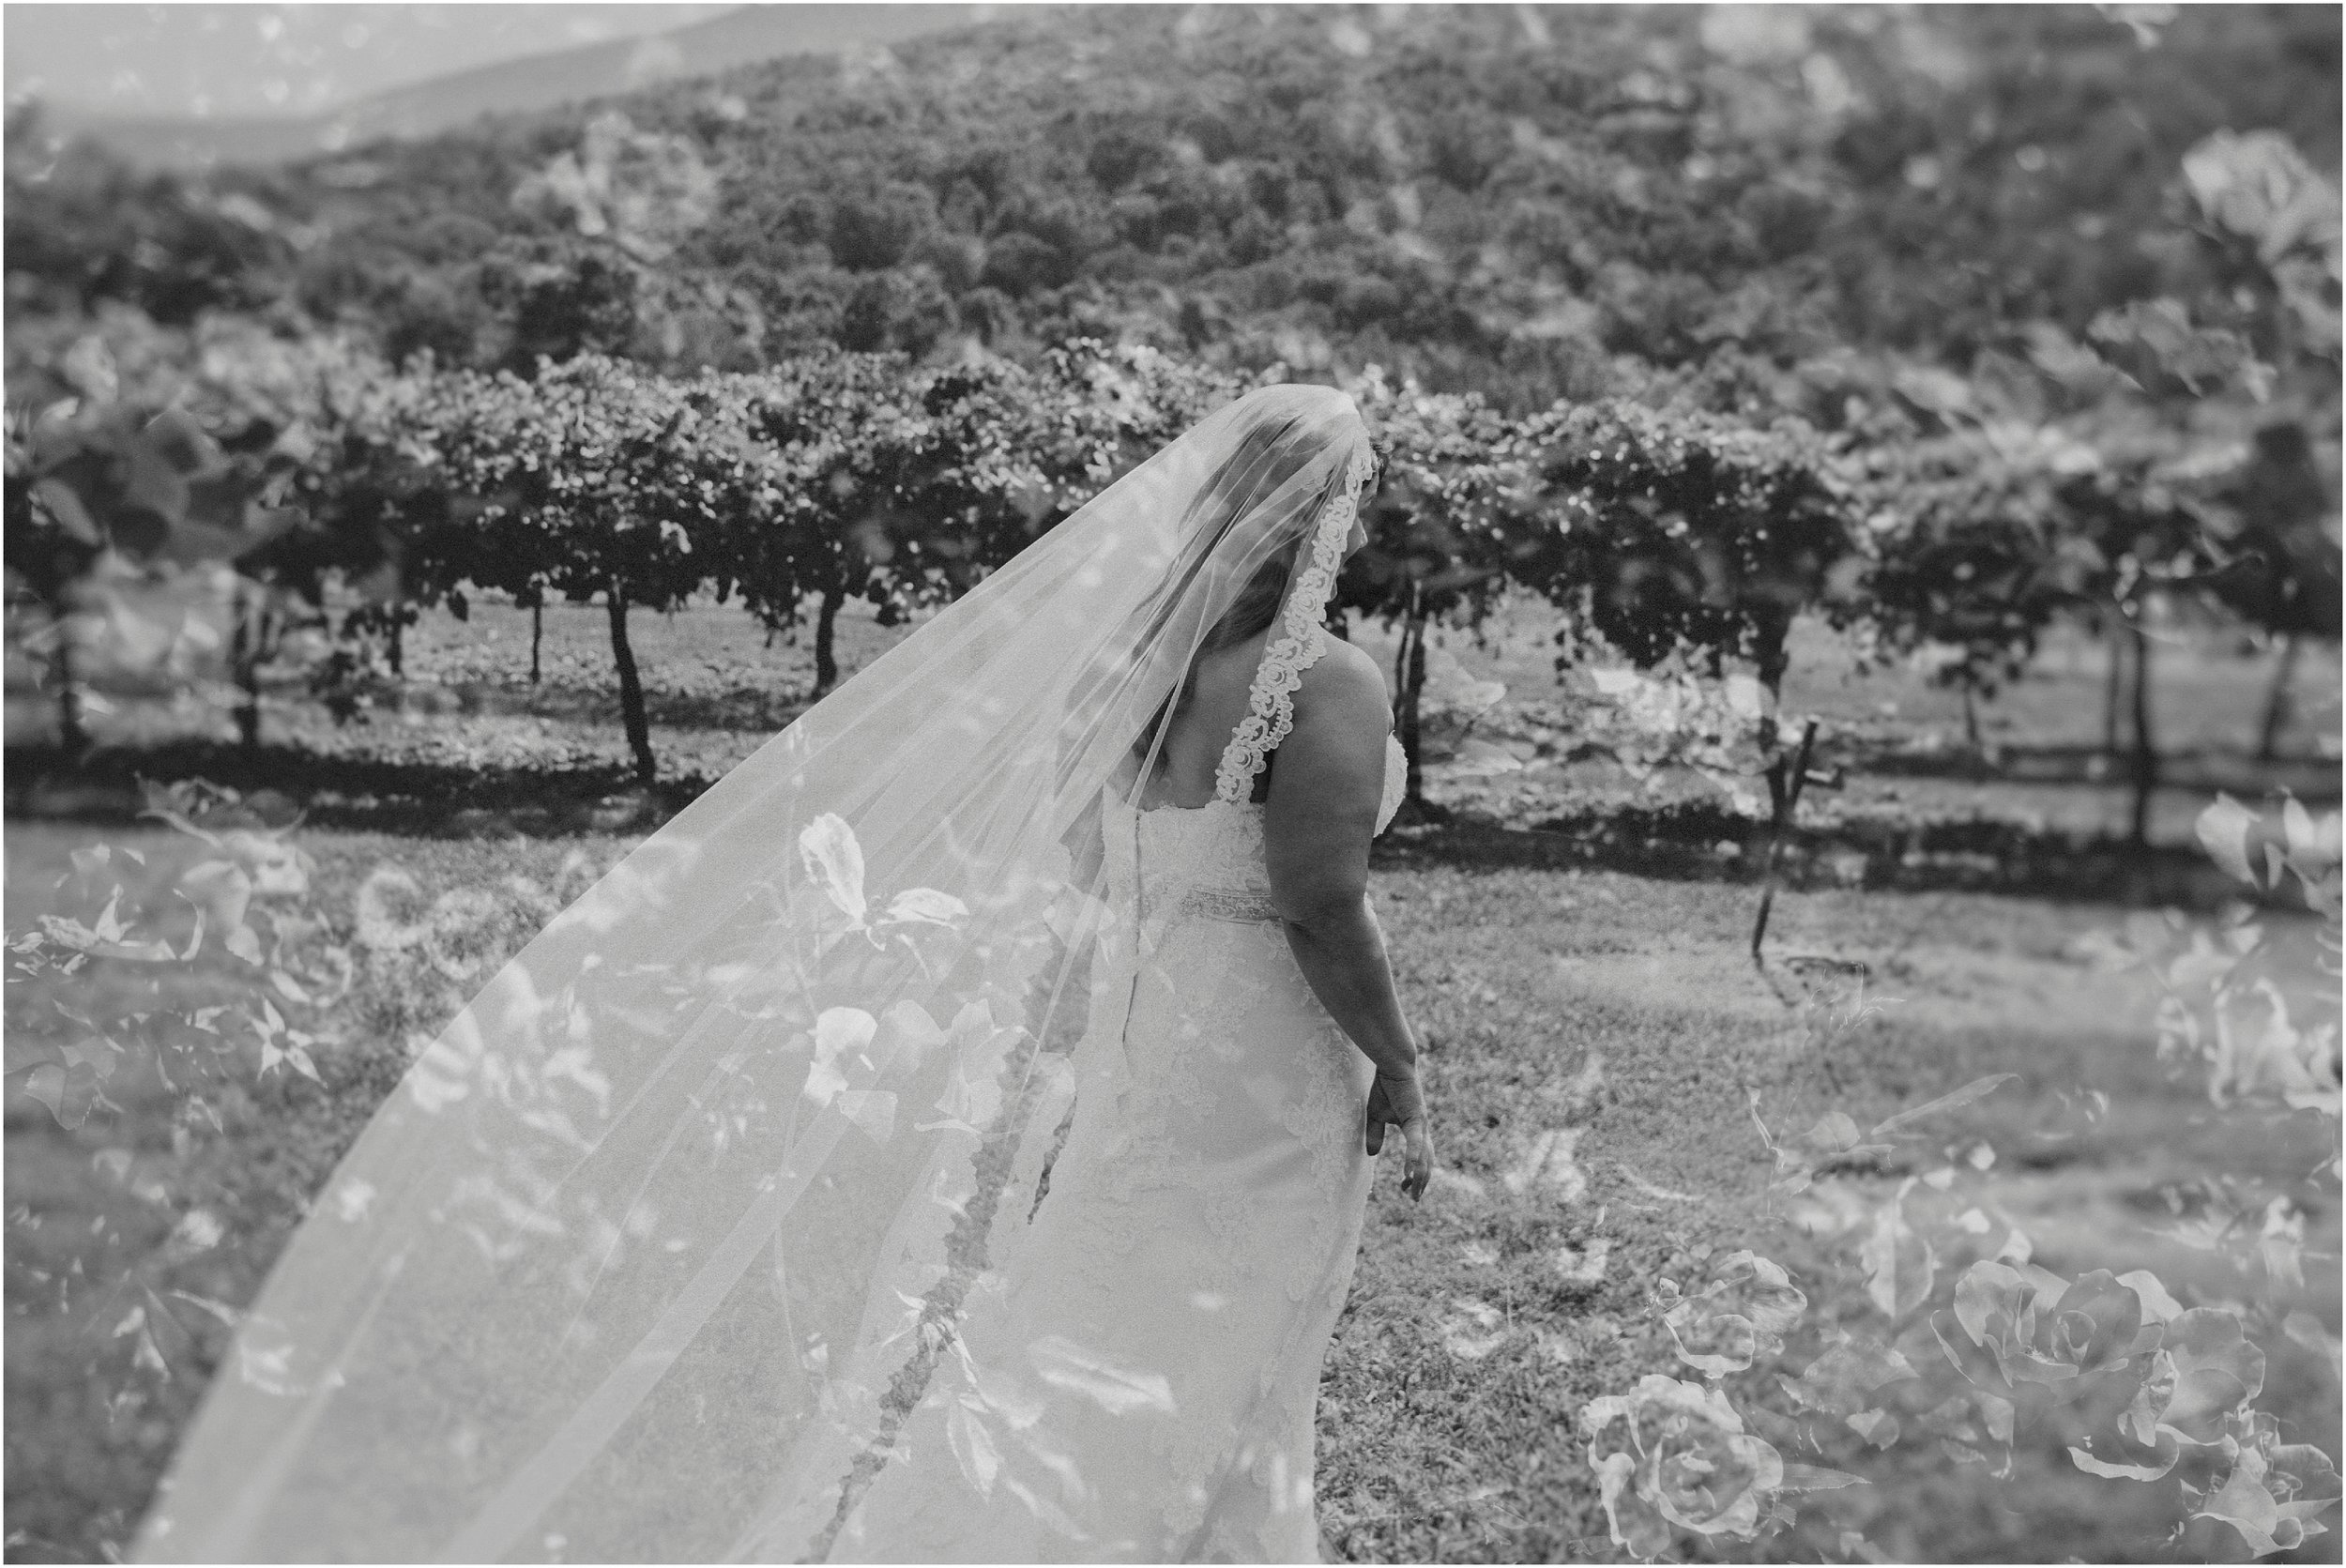 Double exposure fineart wedding photo of bride walking to the first look with her groom